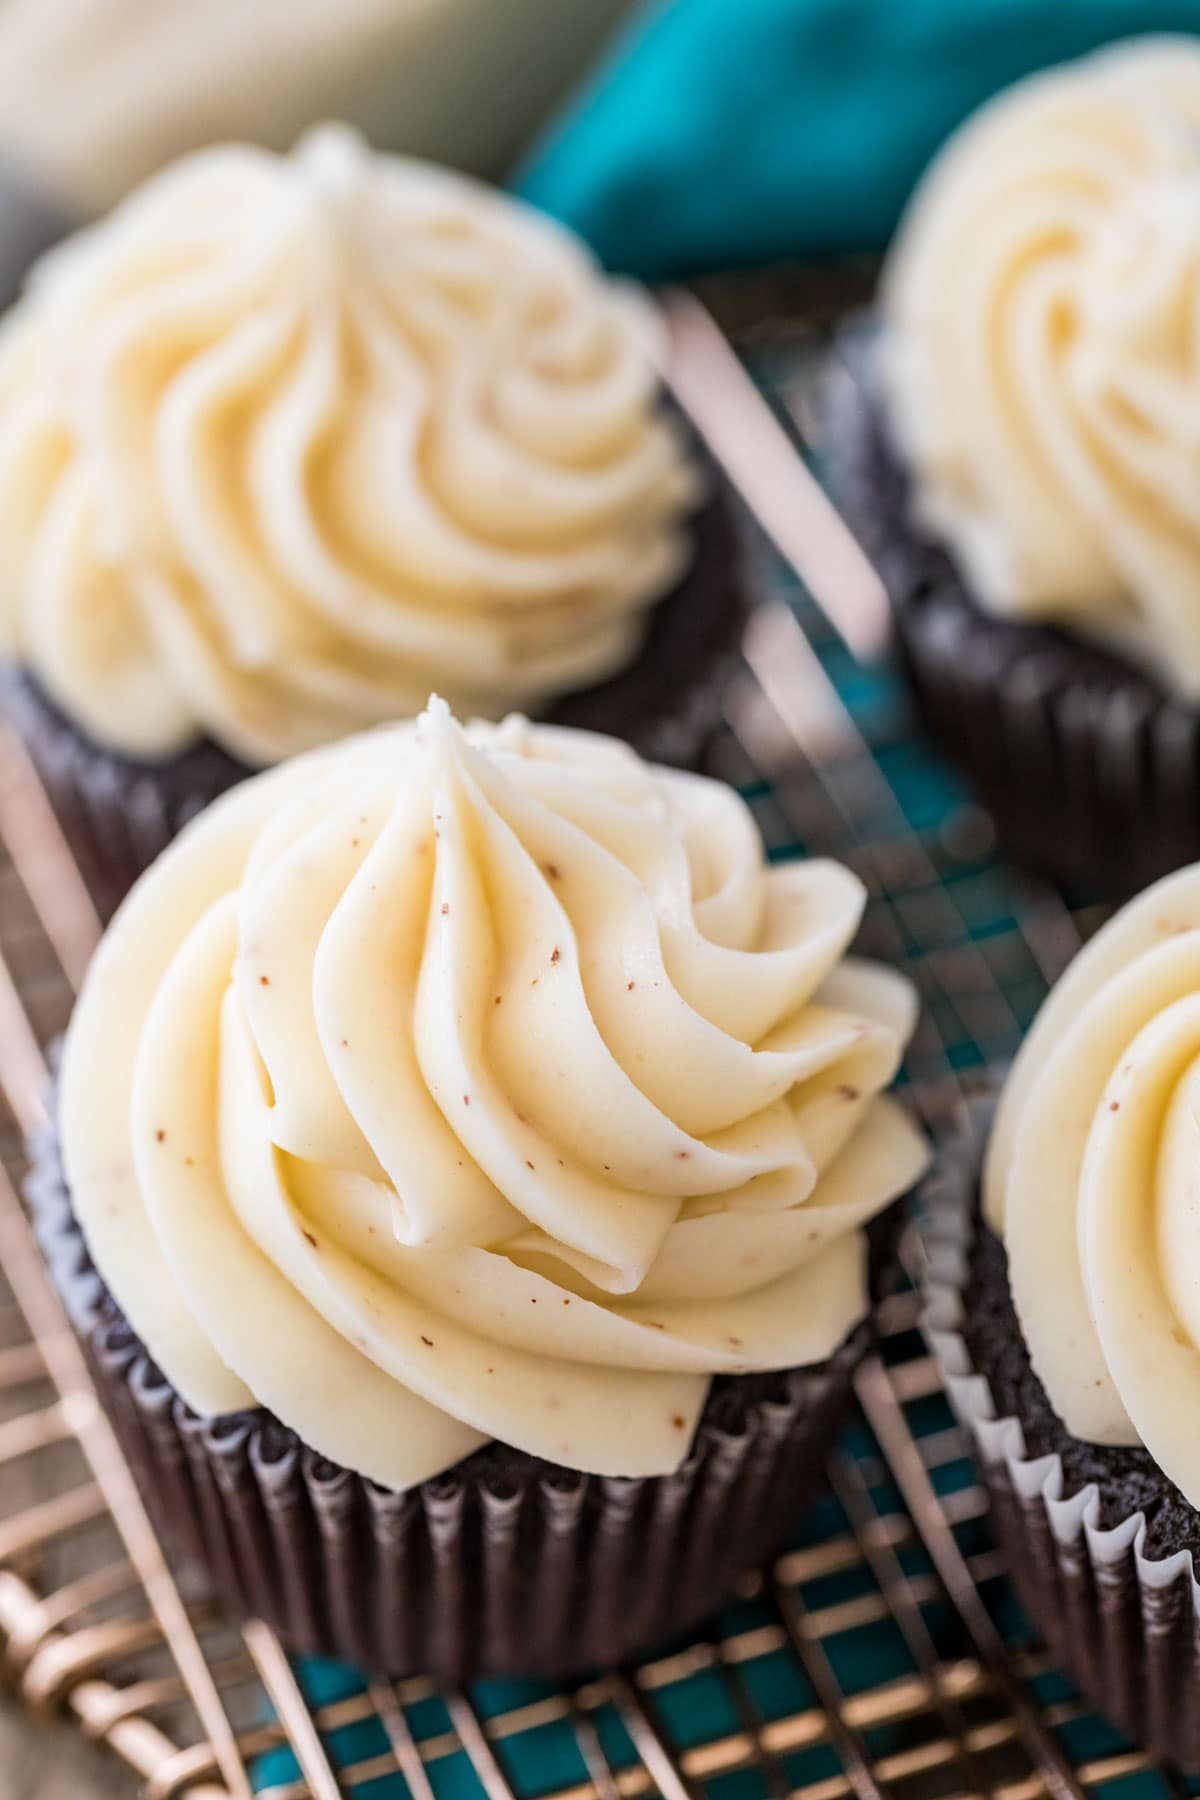 brown butter frosting on chocolate cupcake